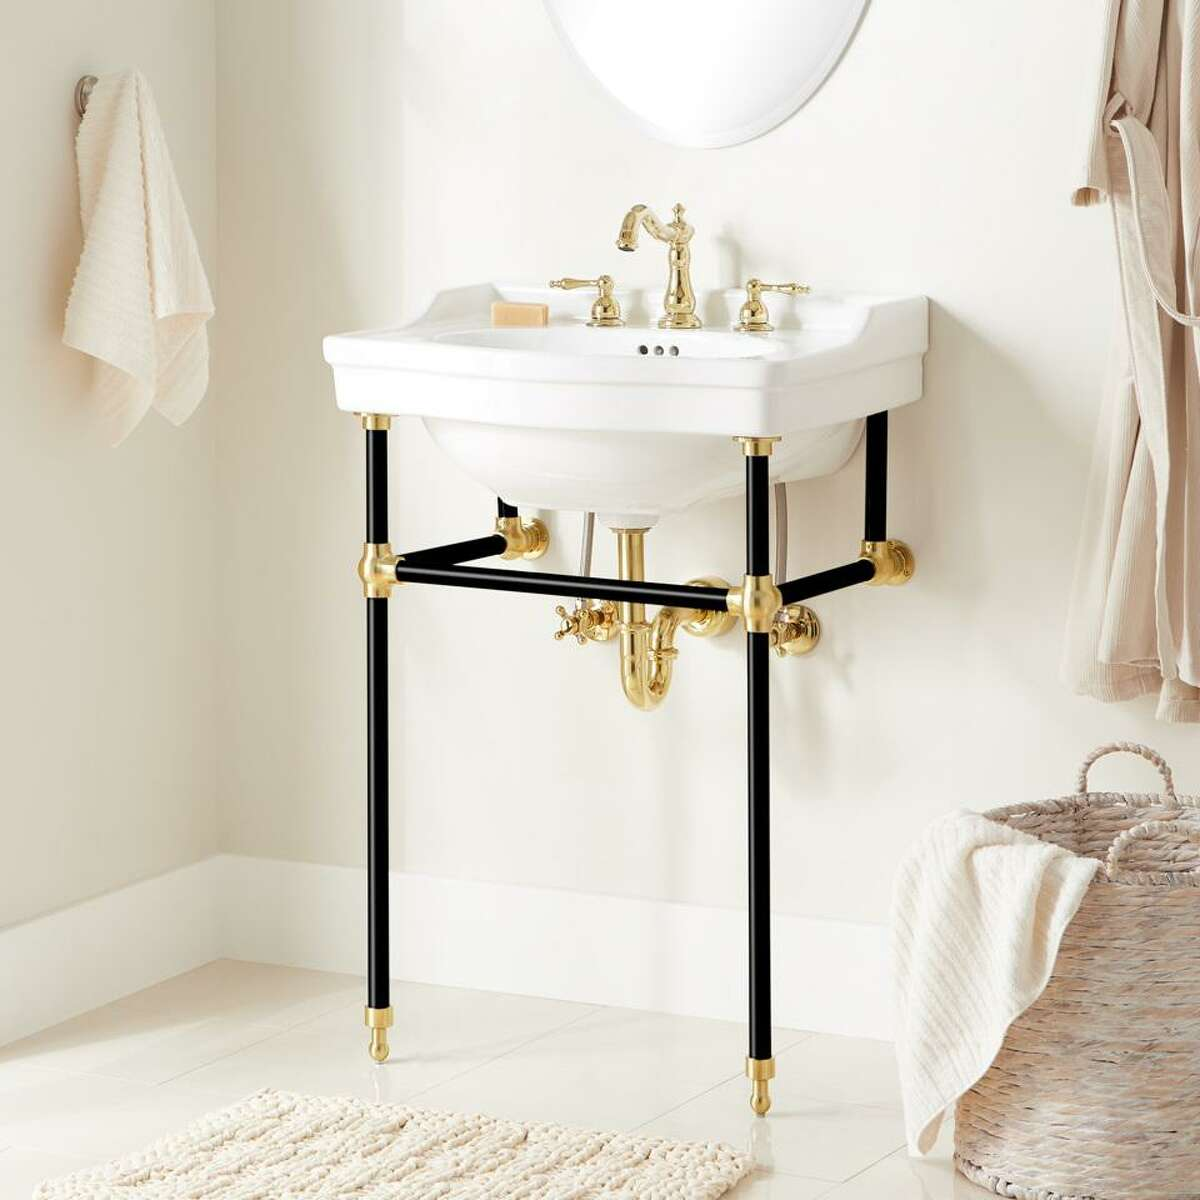 Today, homeowners are more willing to mix and match finishes, such as this standalone sink that combines matte black supports with polished gold hardware and fixtures.